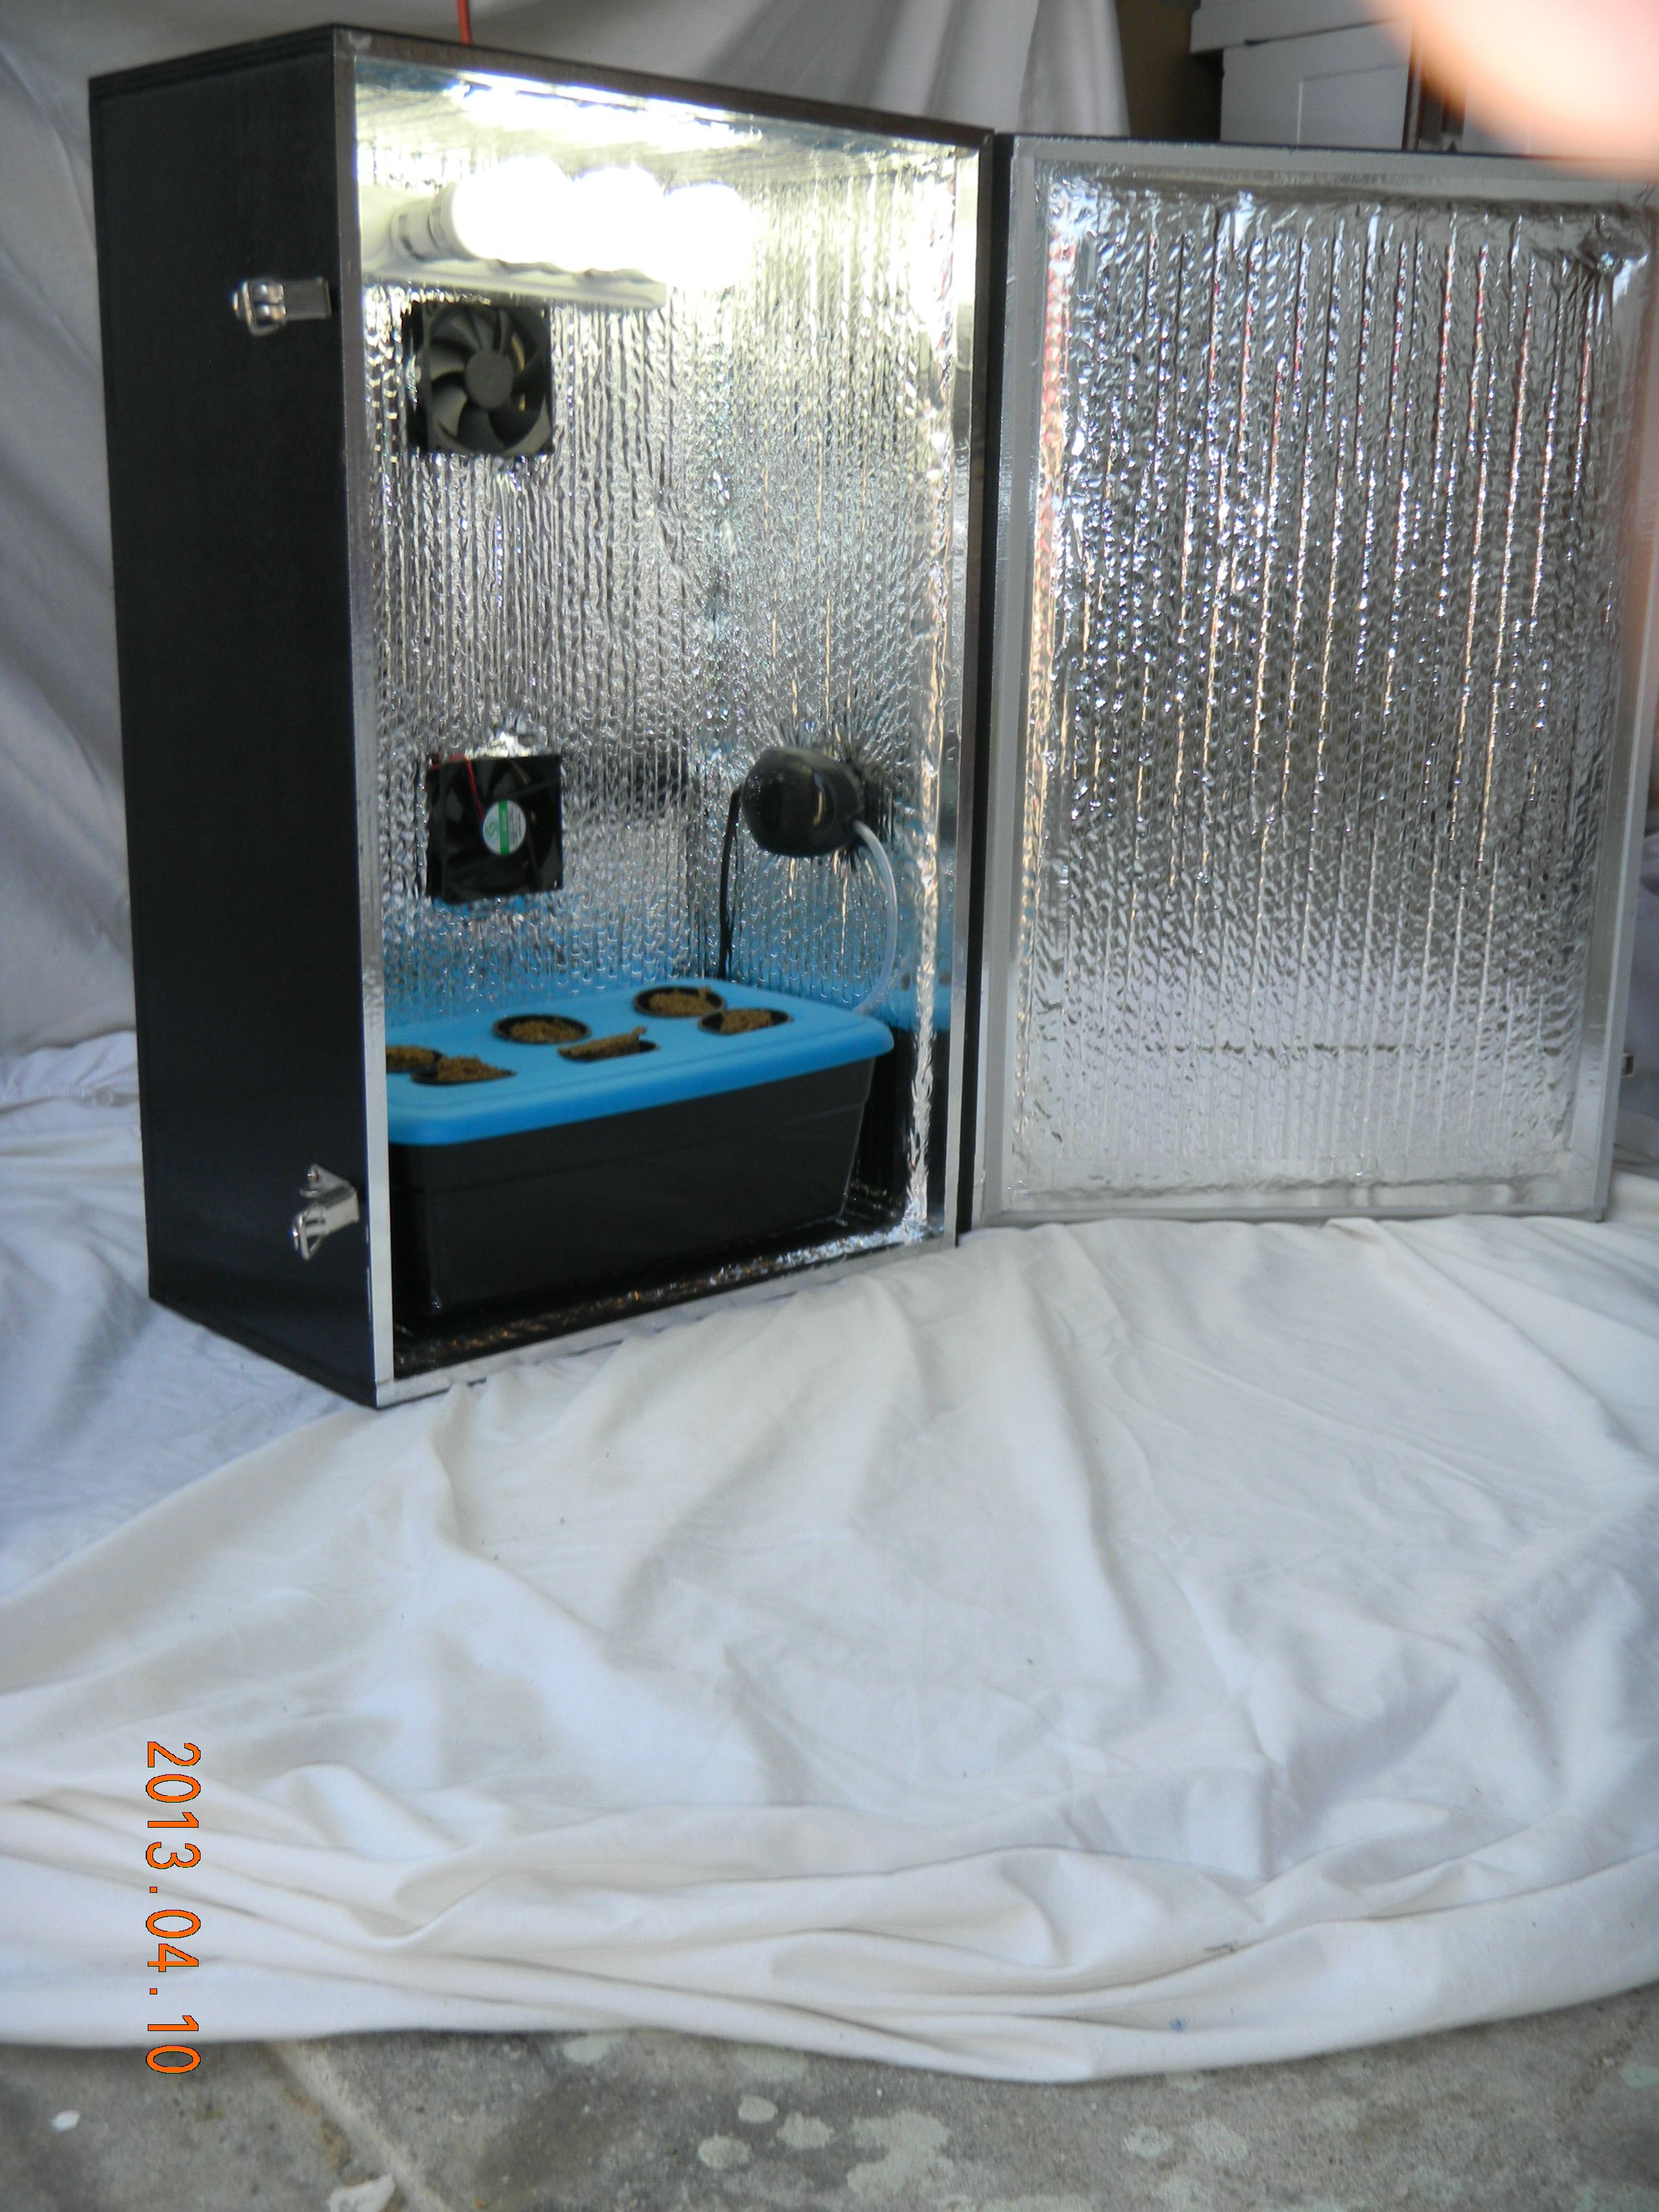 Check out the full selection of the best stealth grow Grow room designs